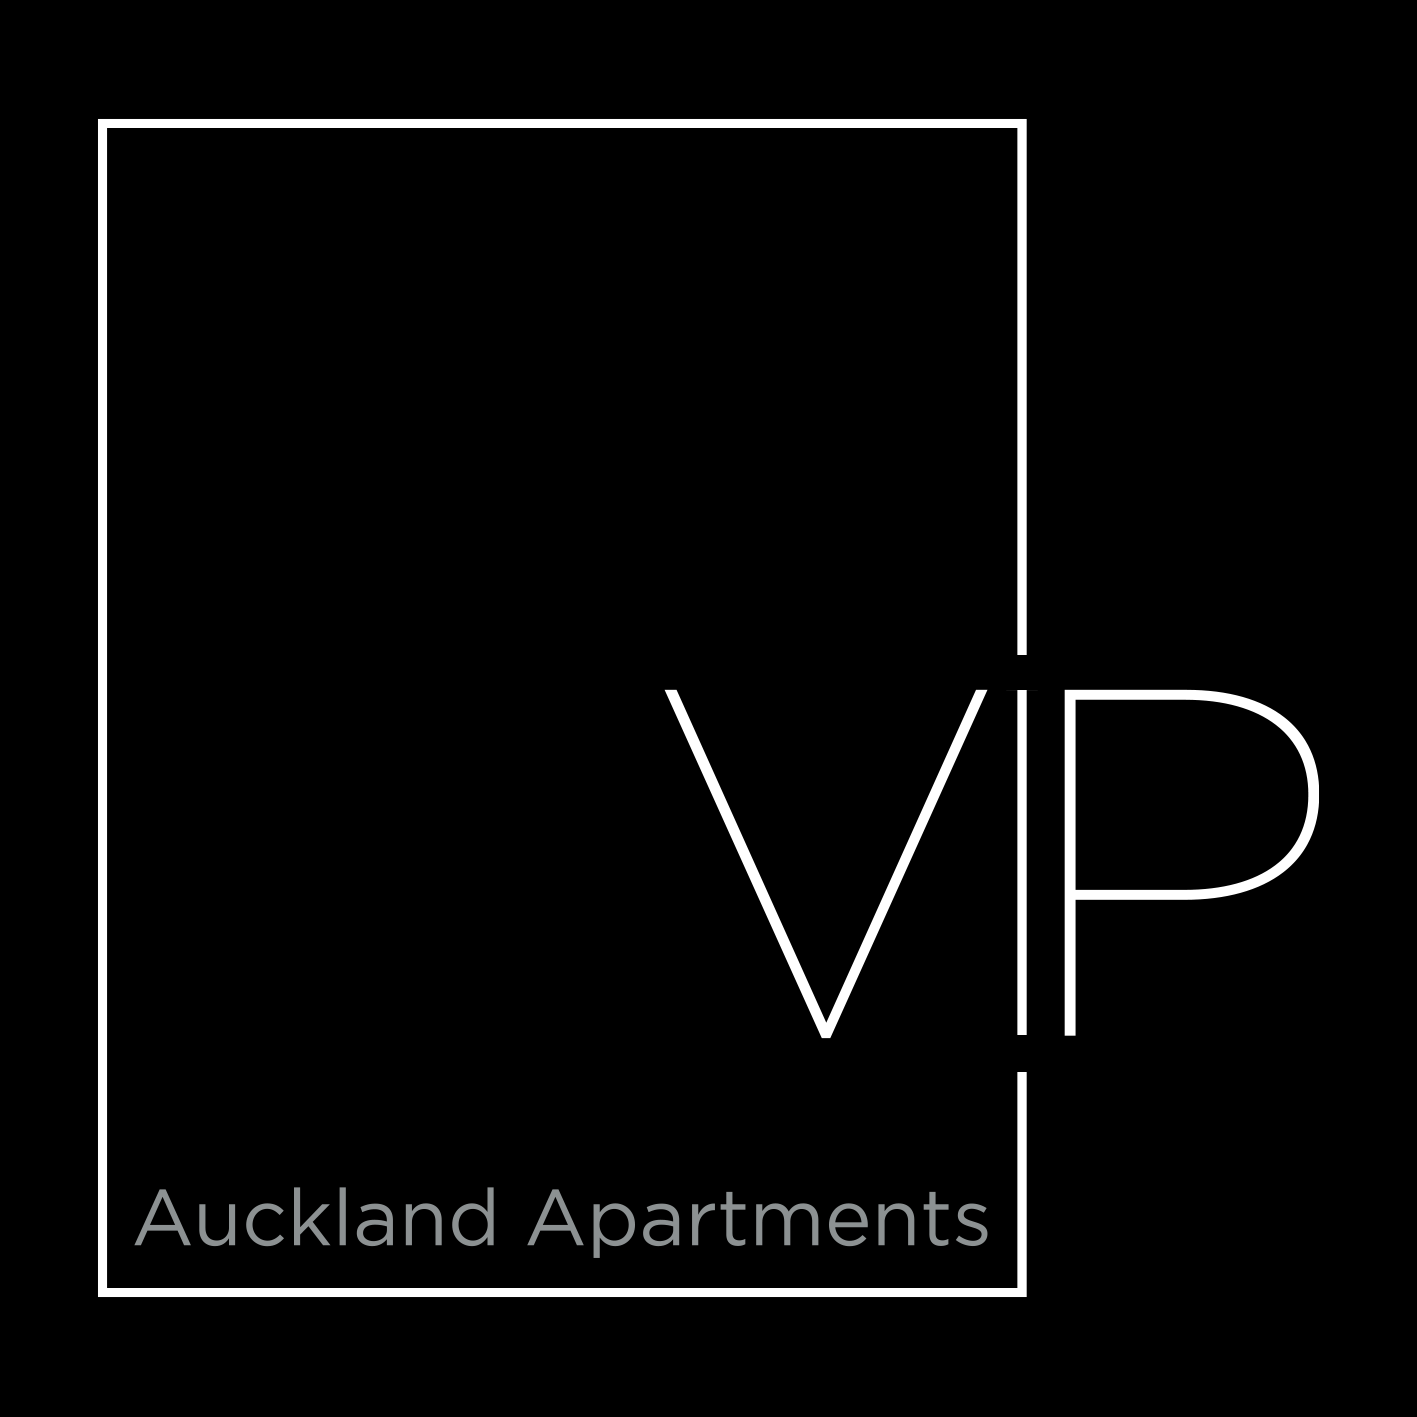 VIP_Auckland_Apartments_Black.png